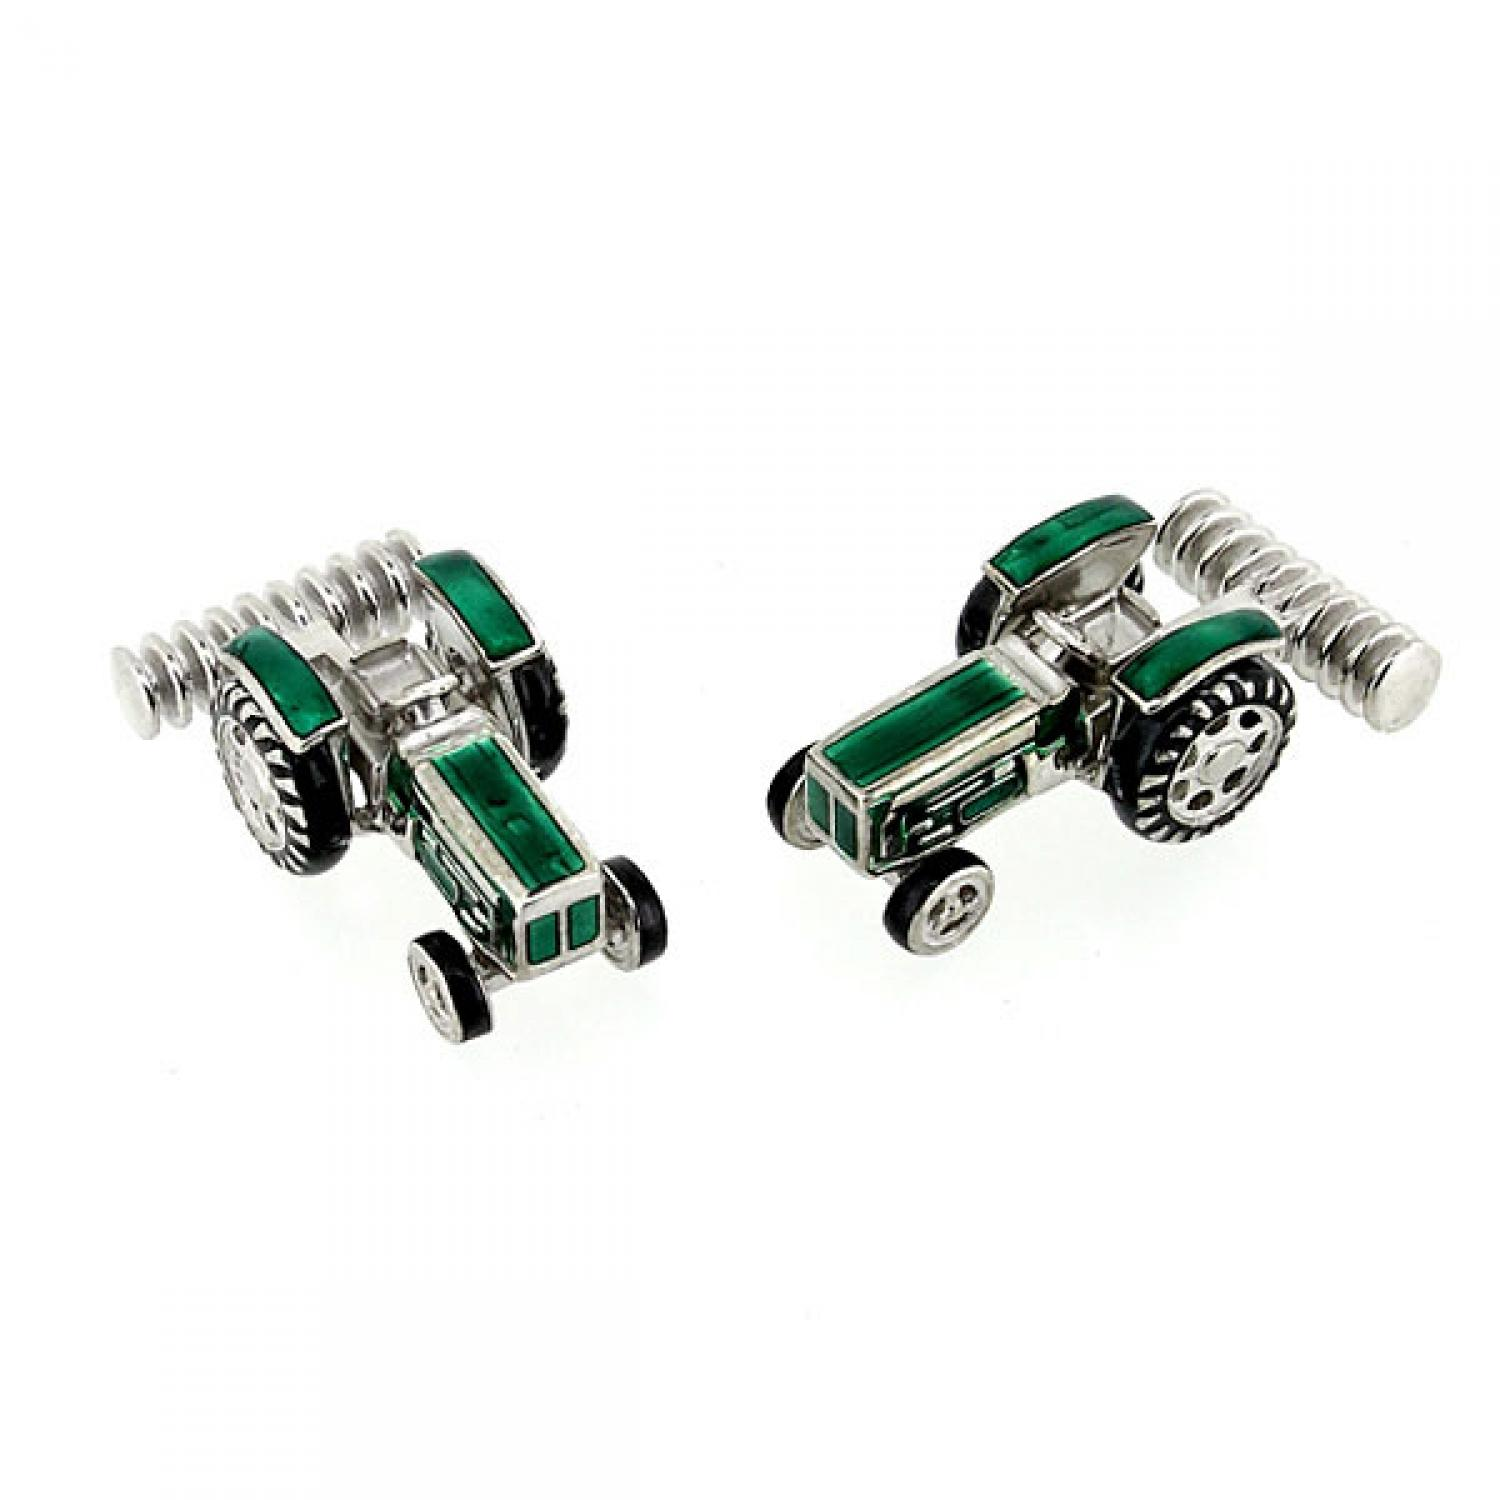 Silver and enamel Tractor Cufflinks